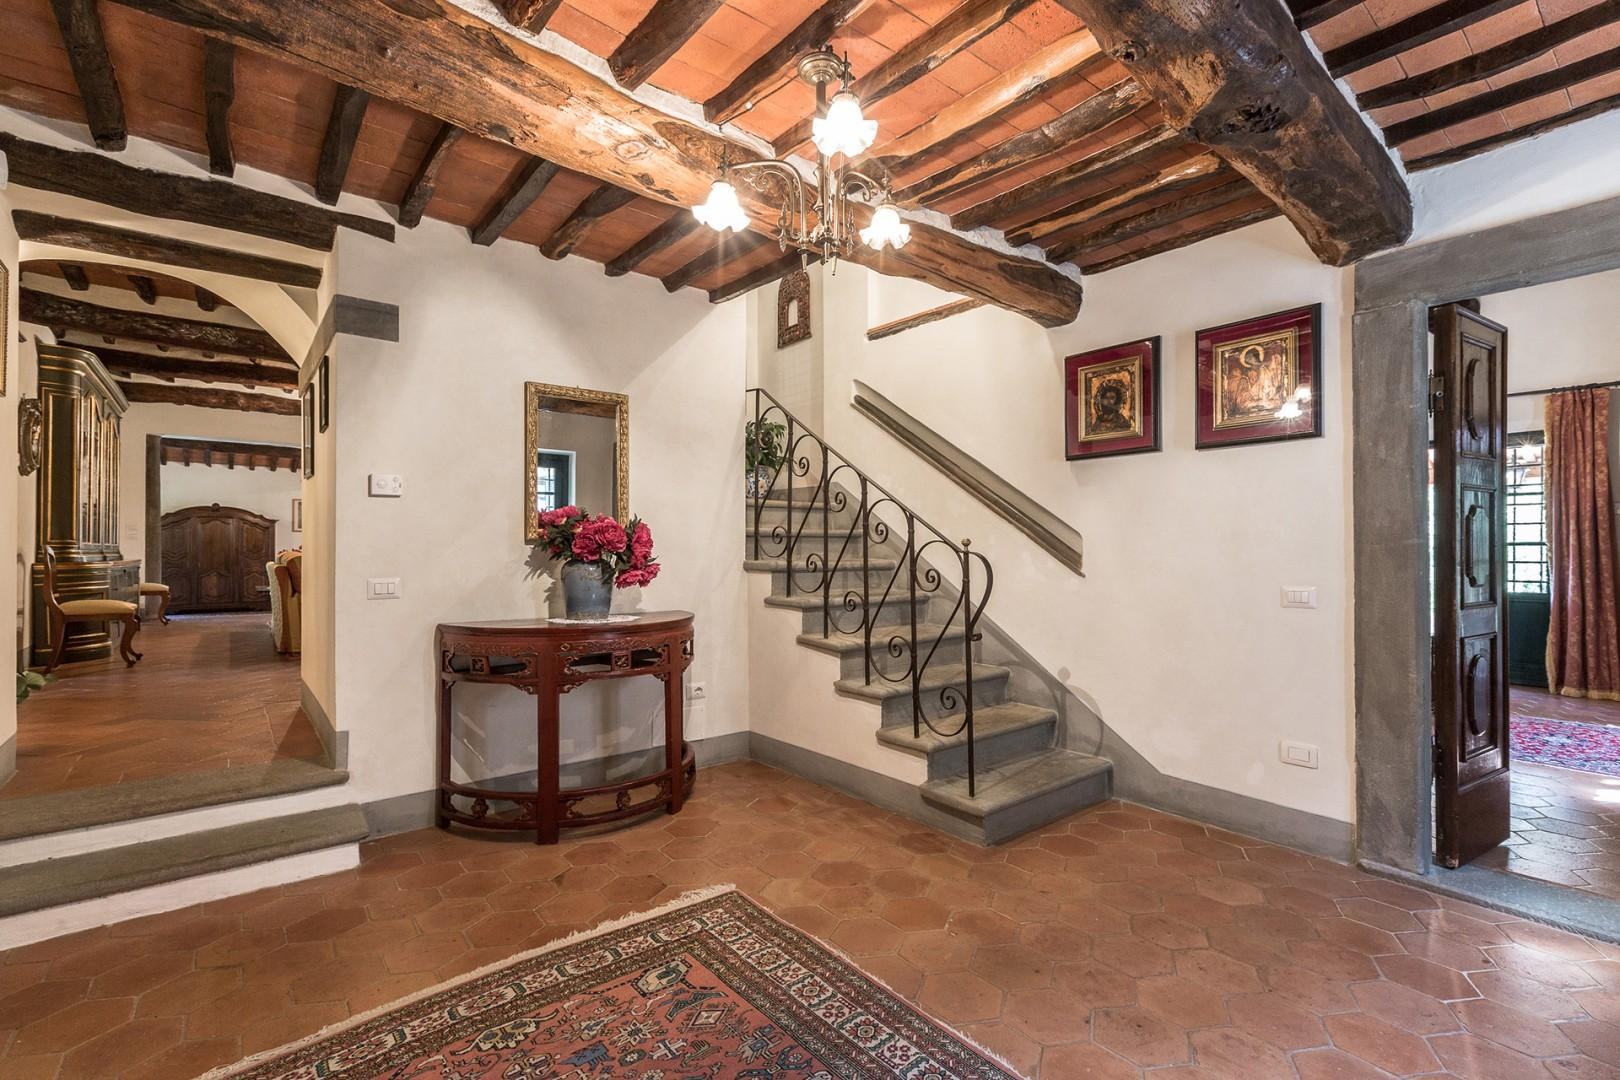 Entry foyer with handsome terra-cotta tiles.